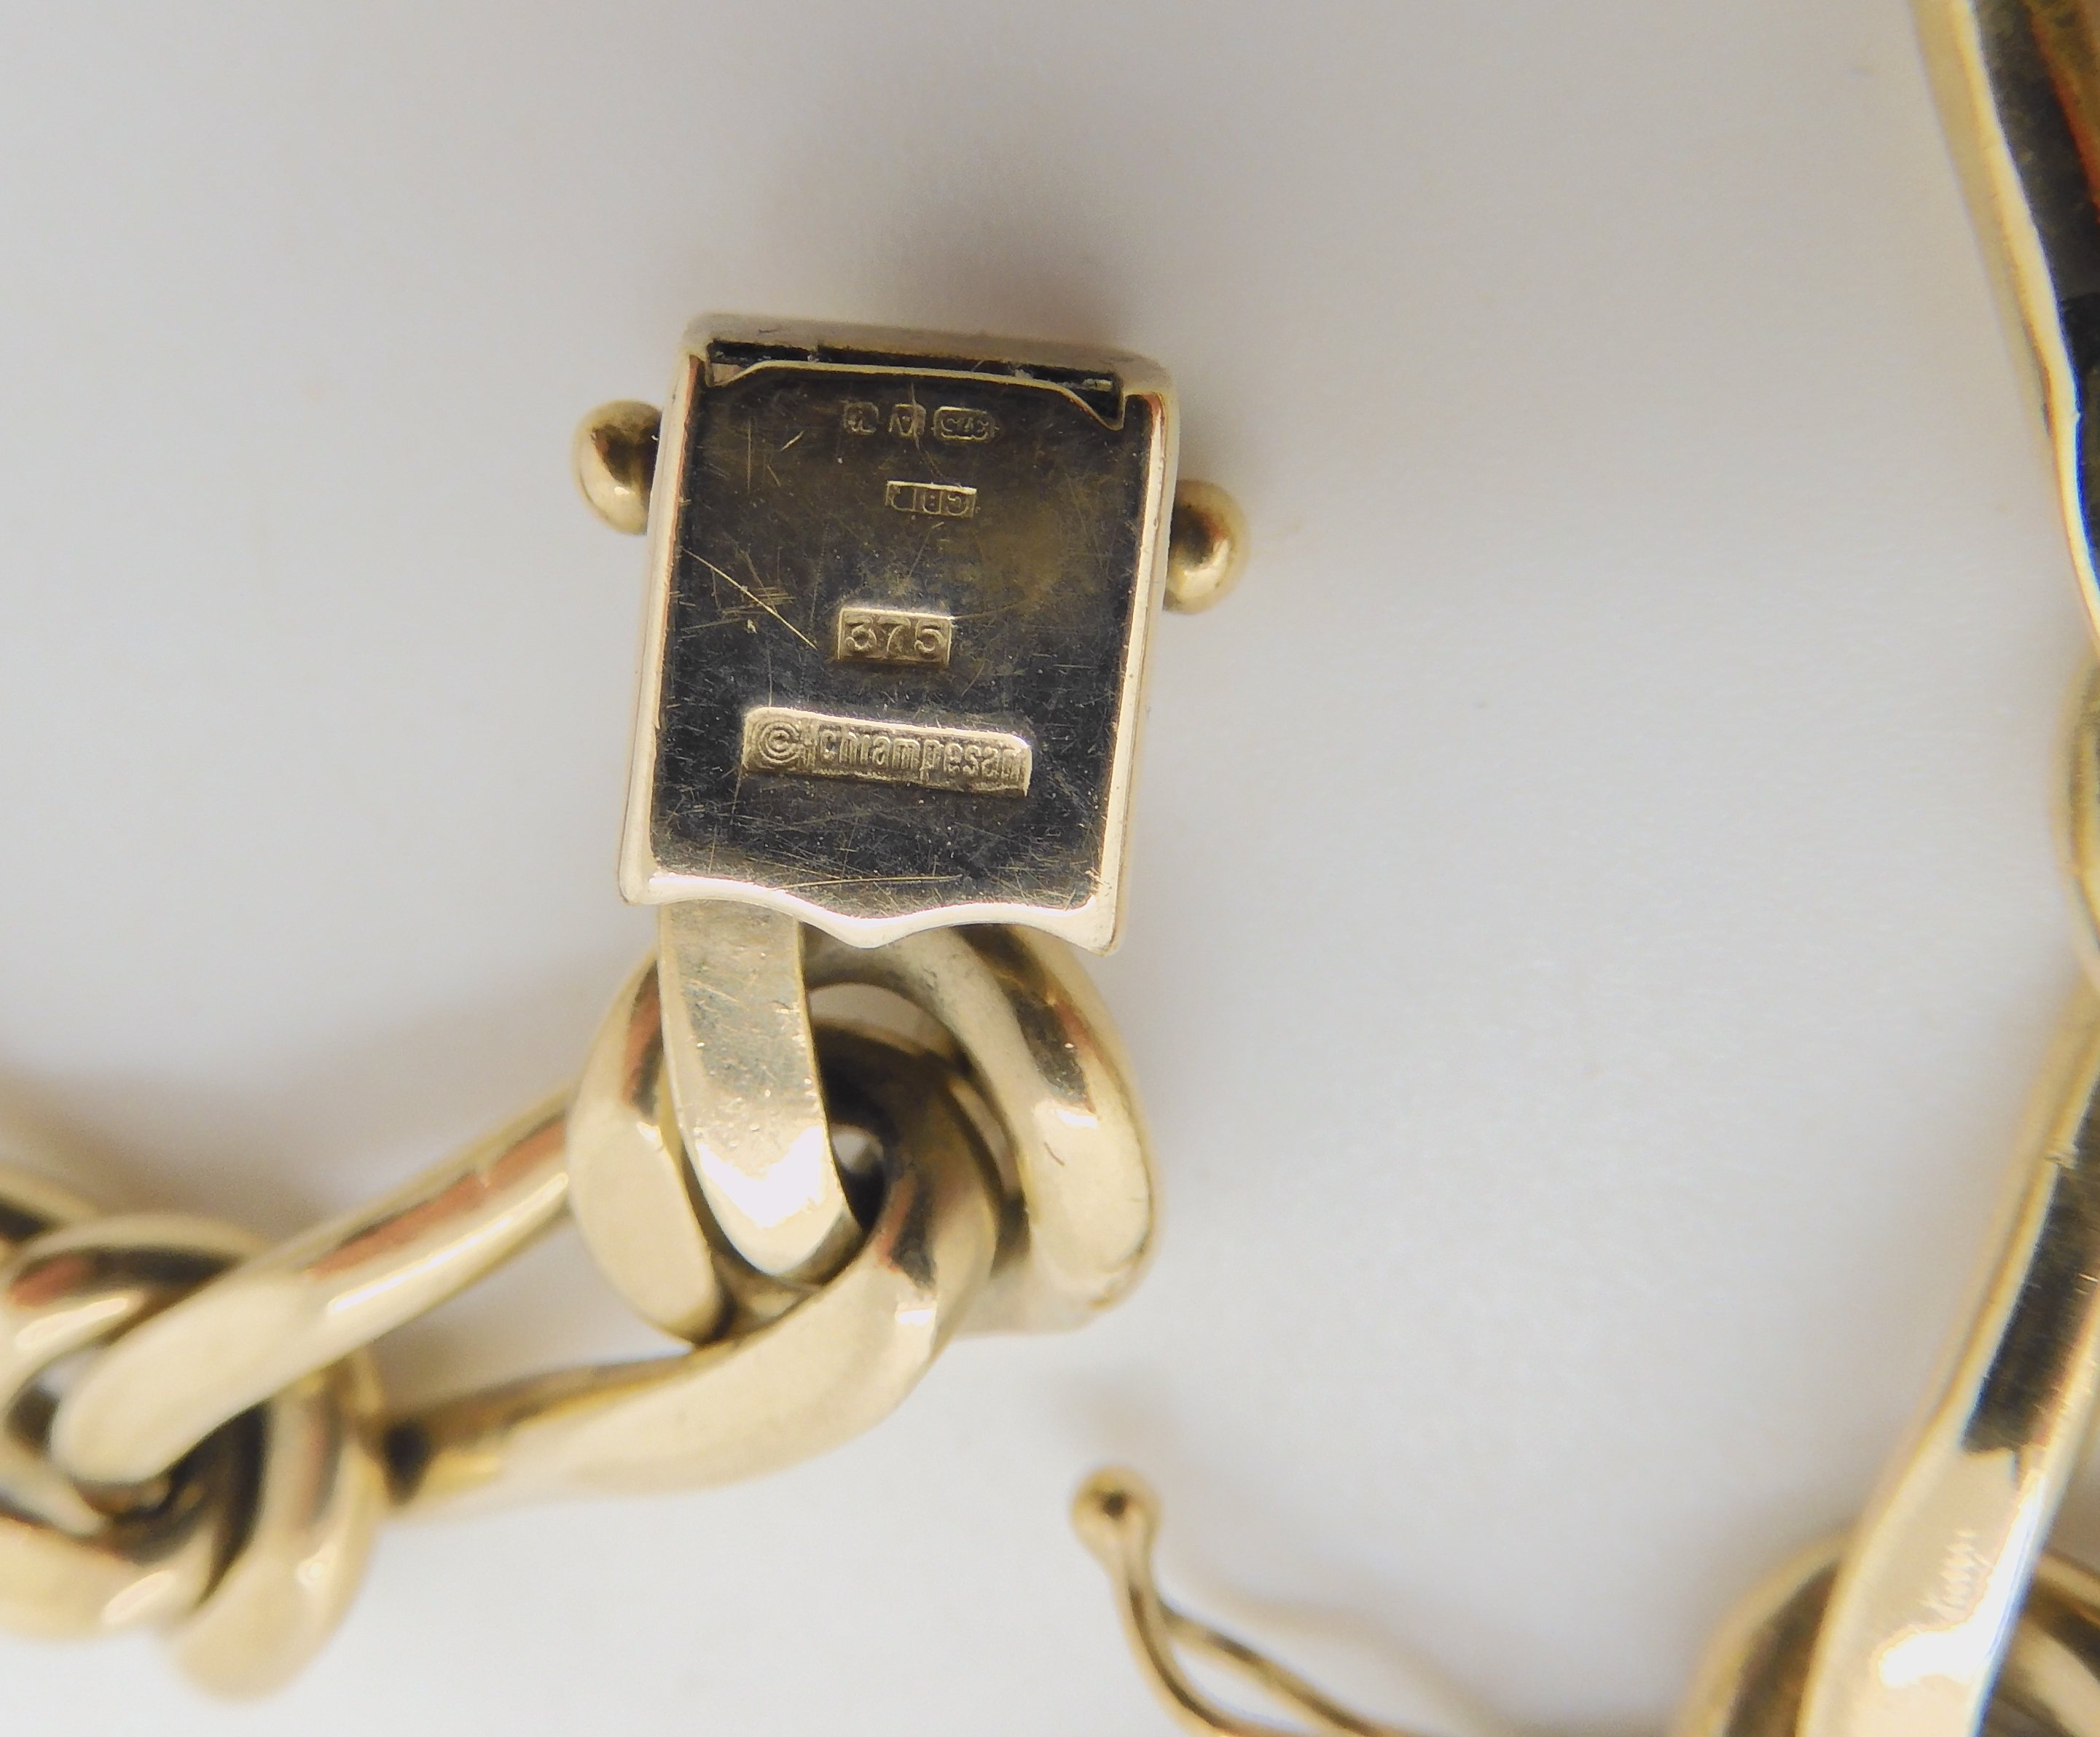 AN ITALIAN 9CT GOLD FANCY CHAIN BRACELET BY CHIAMPESAN length 19cm, weight 34.3gms Condition Report: - Image 2 of 2